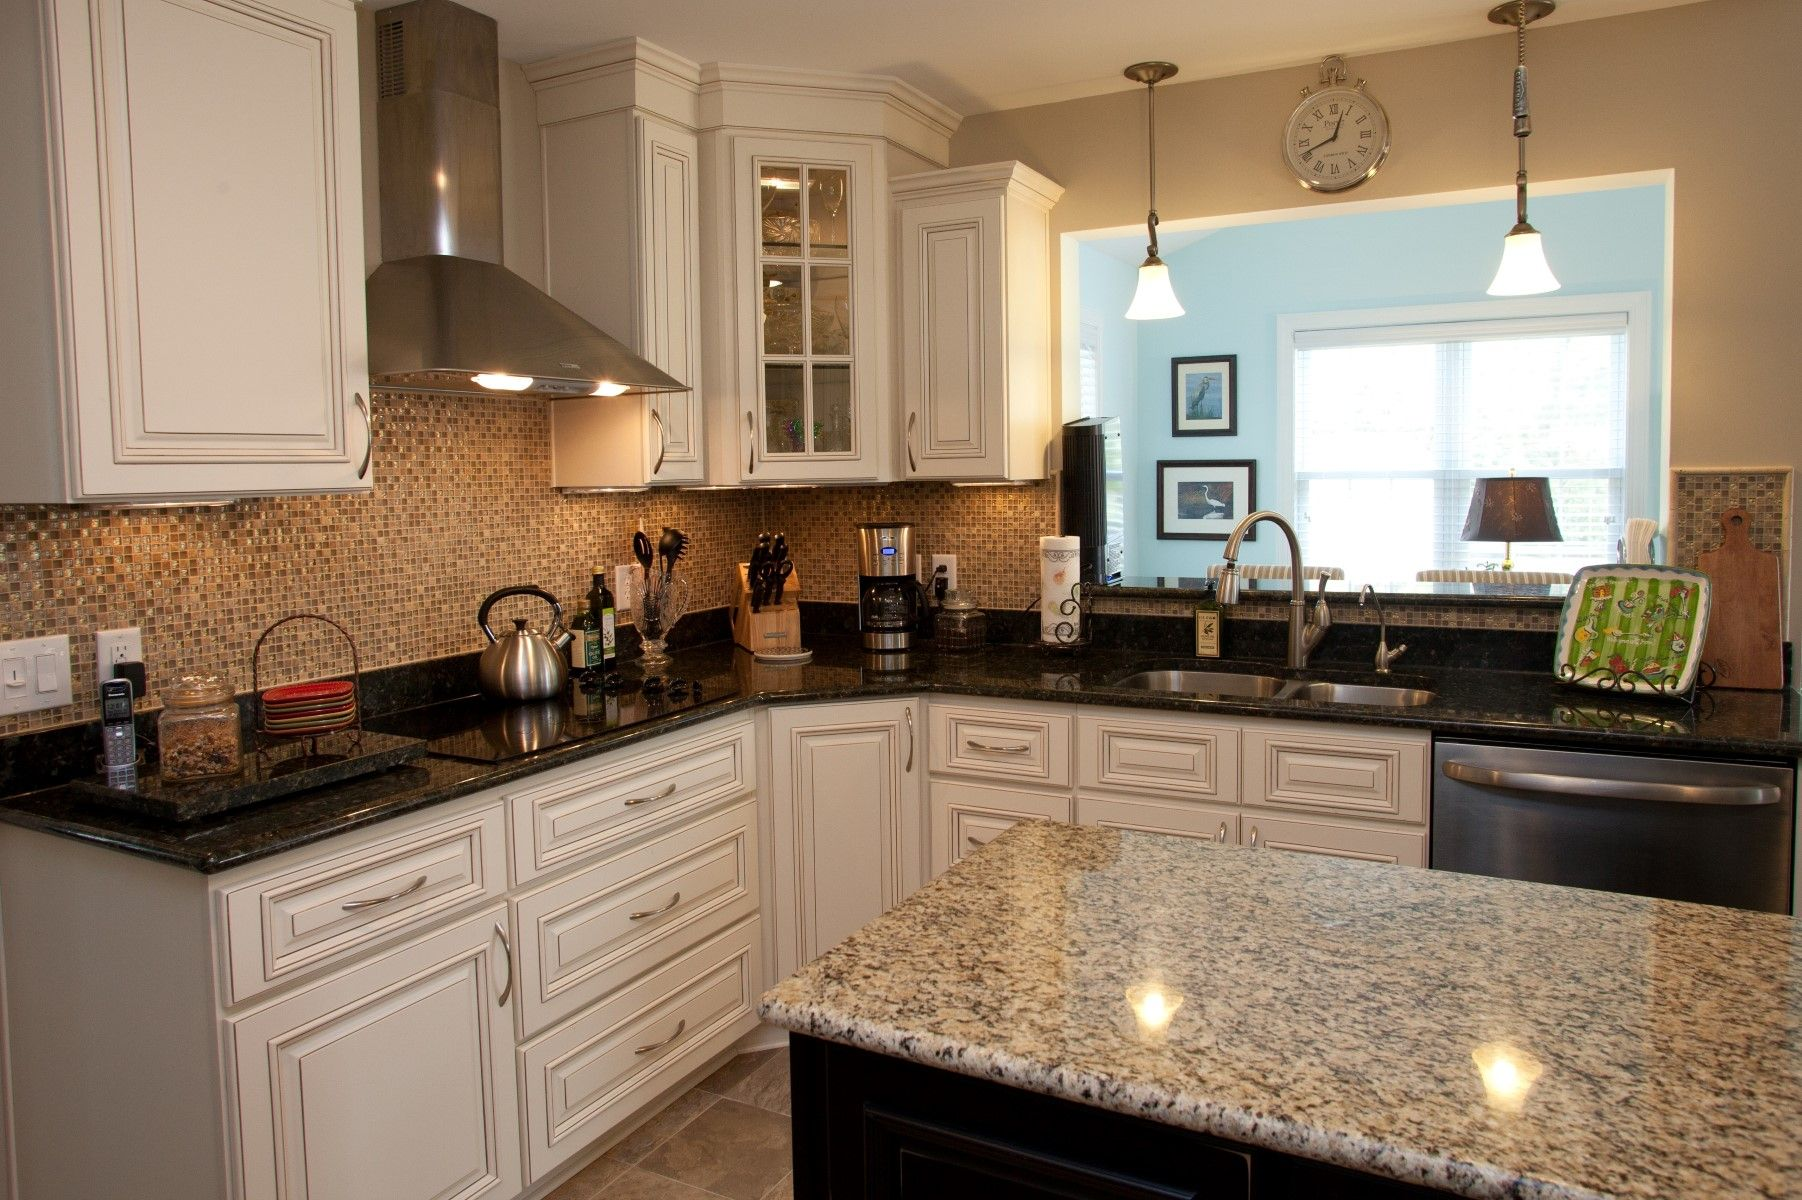 Kitchen Decorations For Countertops Decorating Your Granite Island Images Kitchen White